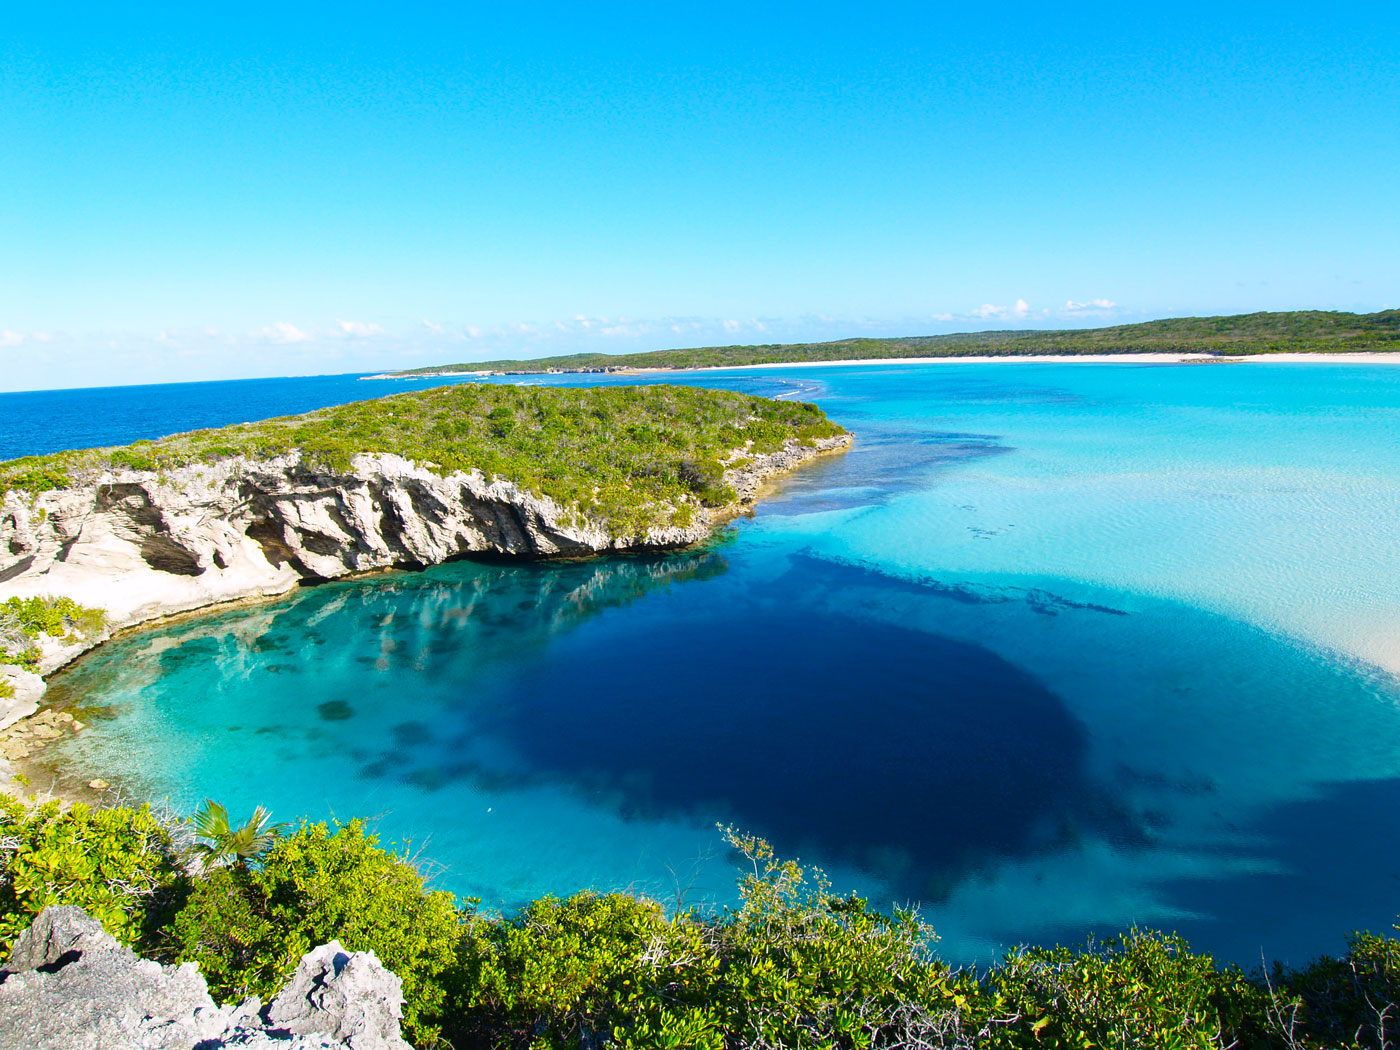 The Blue Hole in the Bahamas